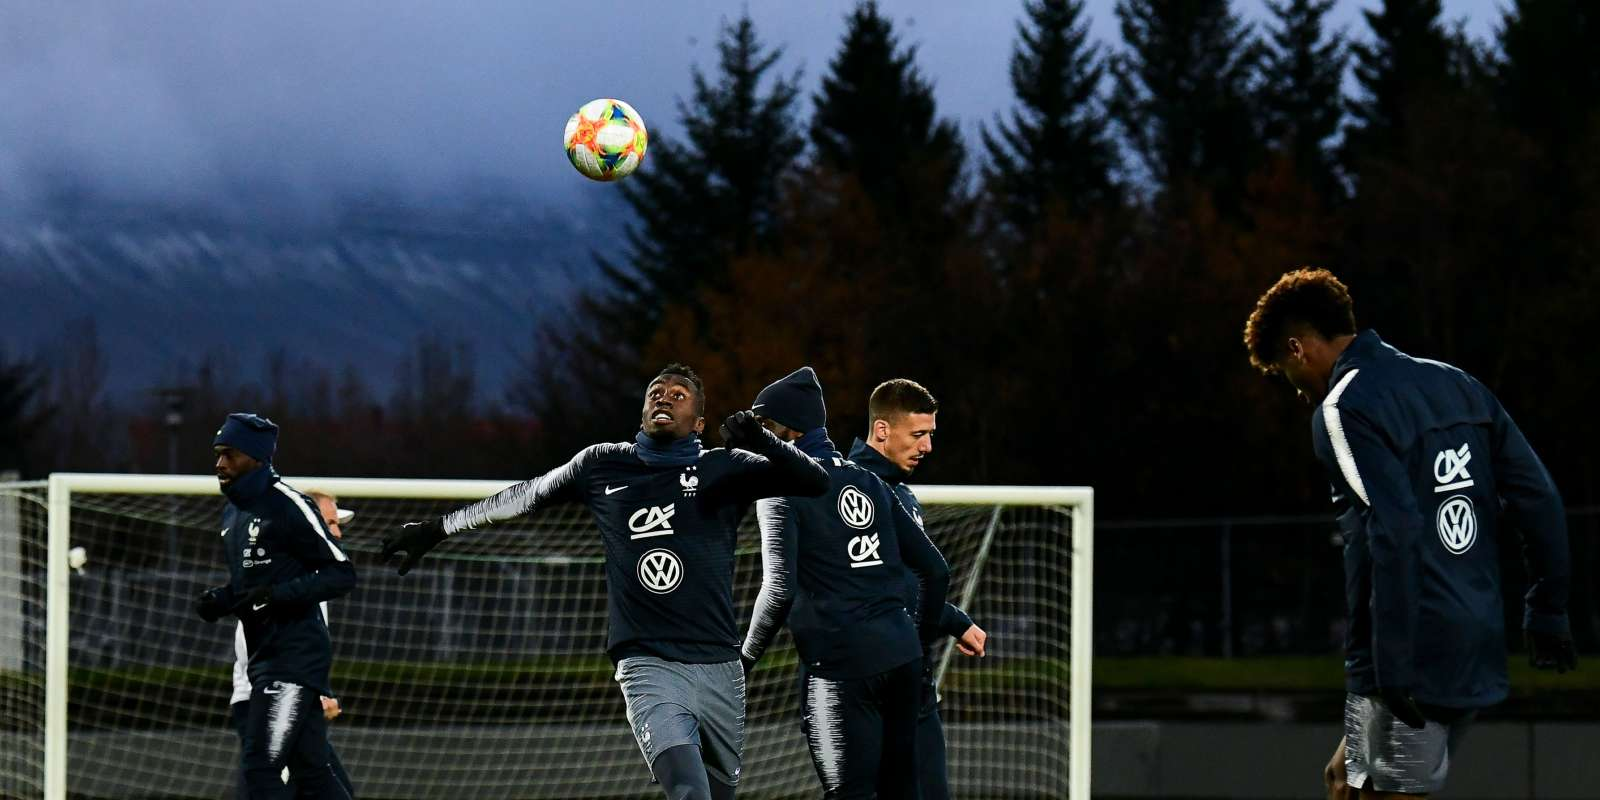 France's midfielder Blaise Matuidi takes part in a training session on the eve of the UEFA Euro 2020 qualifier Group H football match Iceland v France on October 10, 2019 in Reykjavik, Iceland. / AFP / Jonathan NACKSTRAND